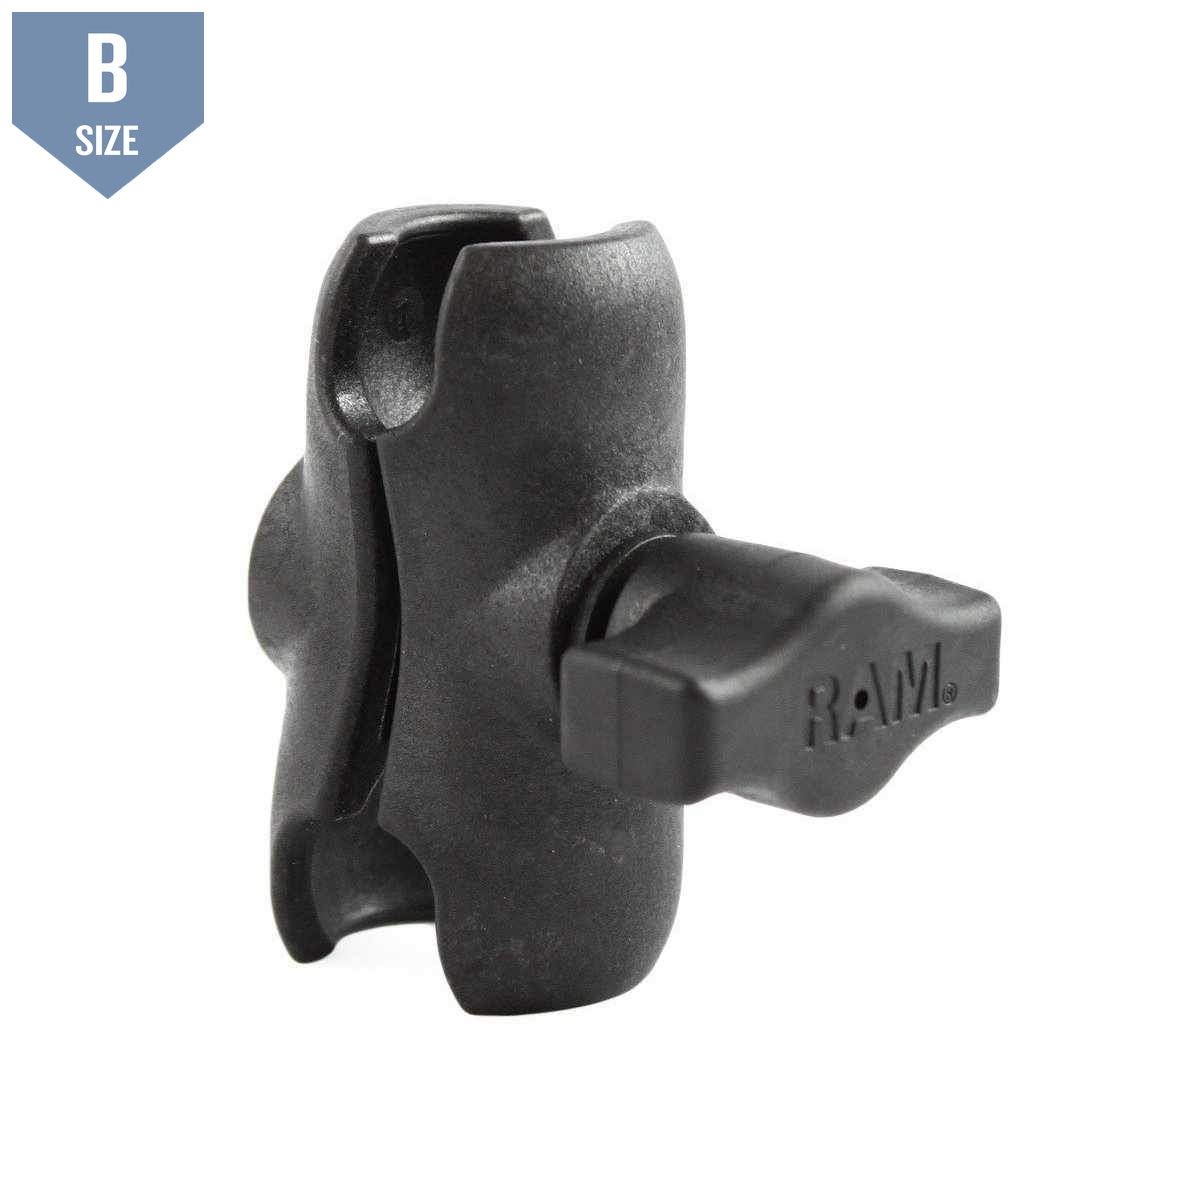 RAM Short Composite Clamp Arm B Size (RAP-B-201U-A) - Modest Mounts